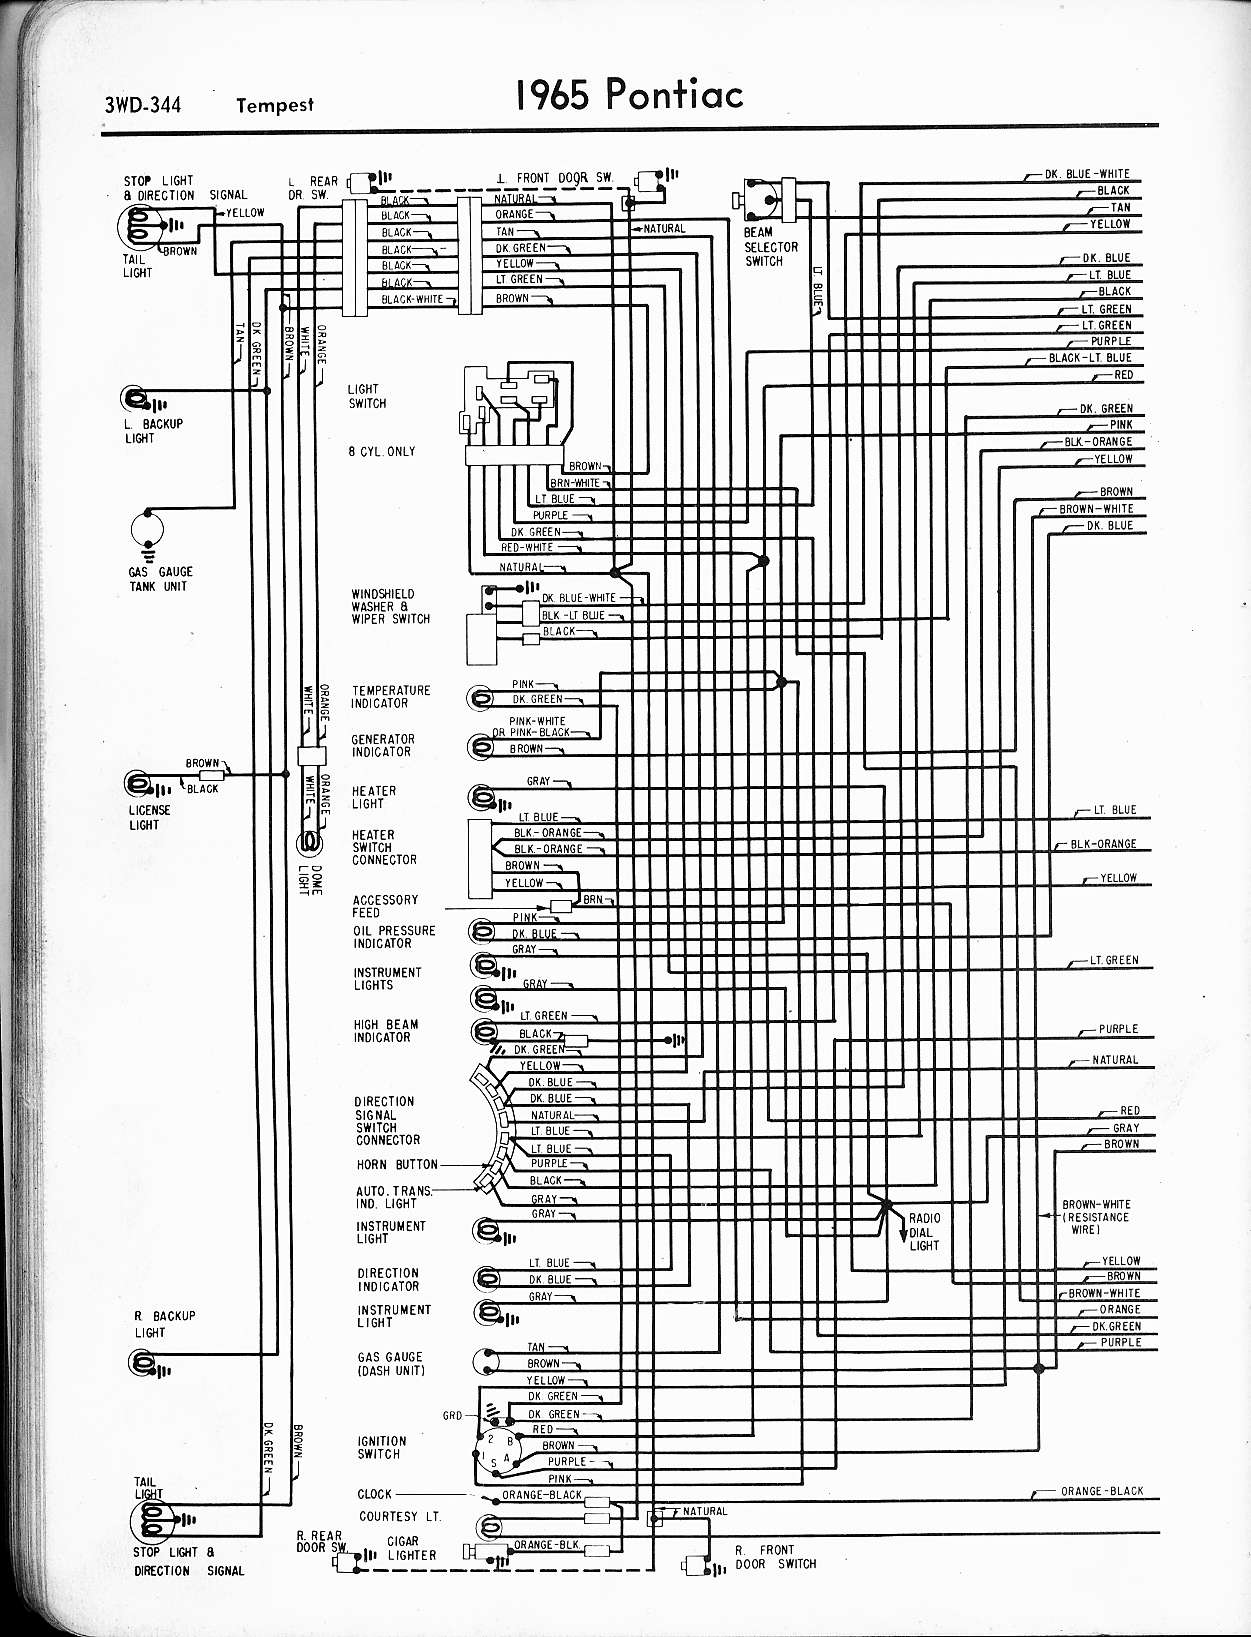 hight resolution of 65 pontiac wiring diagram electrical wiring diagrams rh 25 lowrysdriedmeat de 2003 pontiac bonneville sse diagram of 3800 pontiac engine